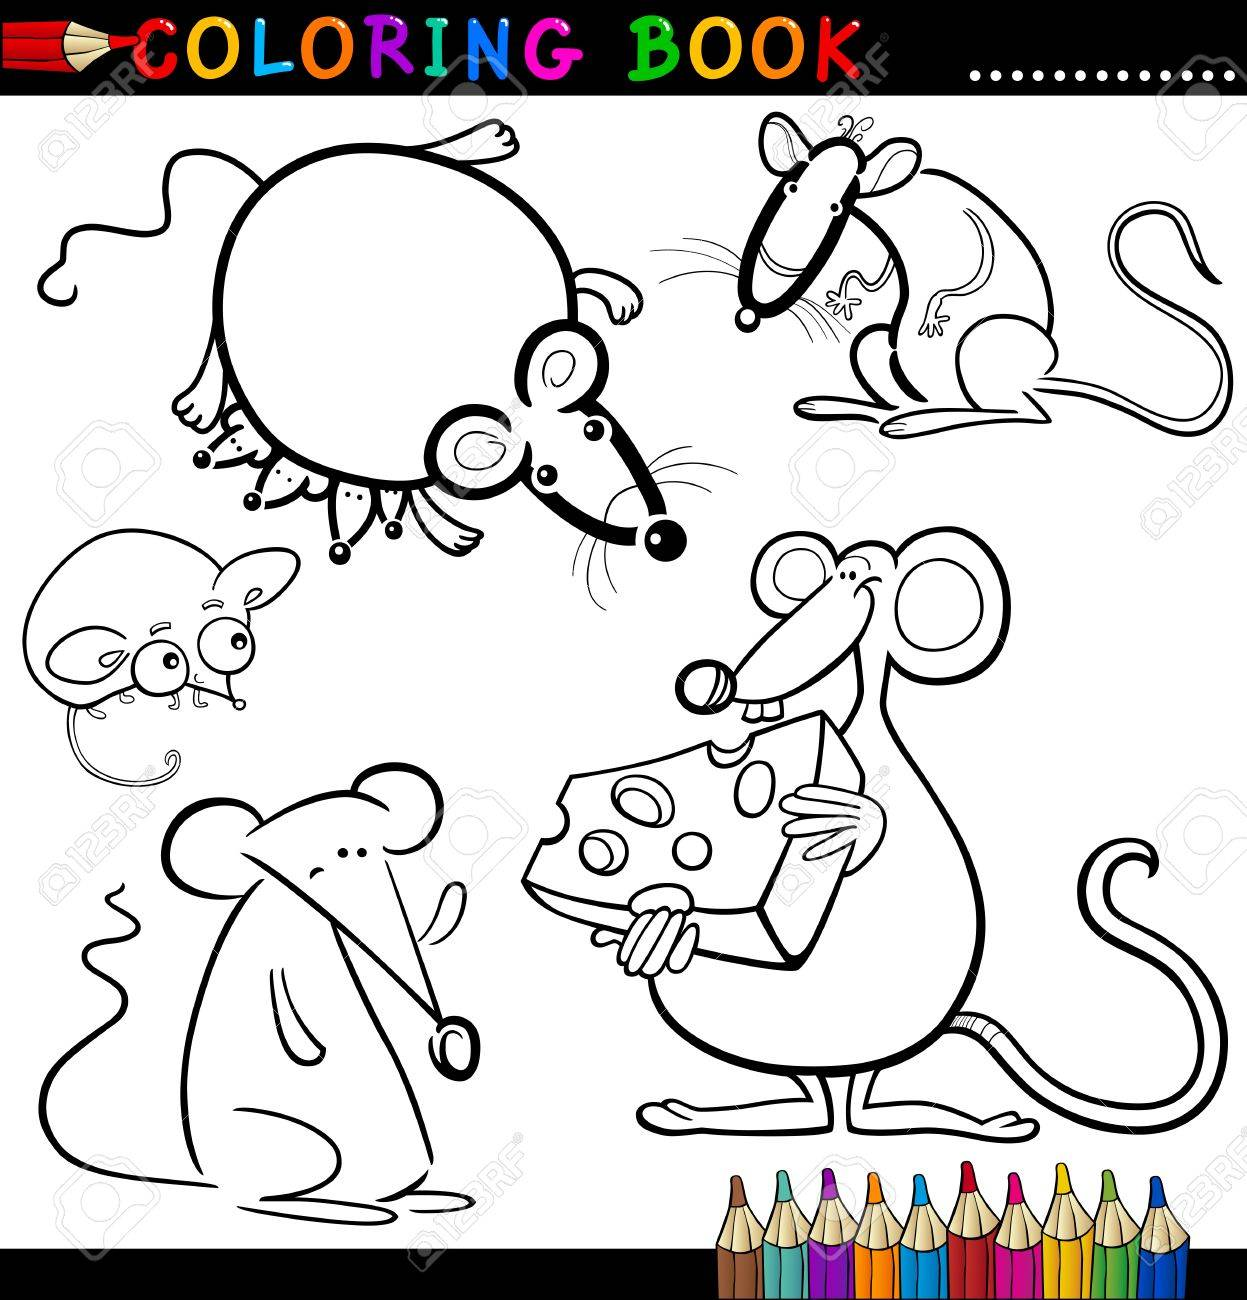 Coloring Book or Page Cartoon Illustration of Funny Rats and Mouses for Children Stock Vector - 15076923